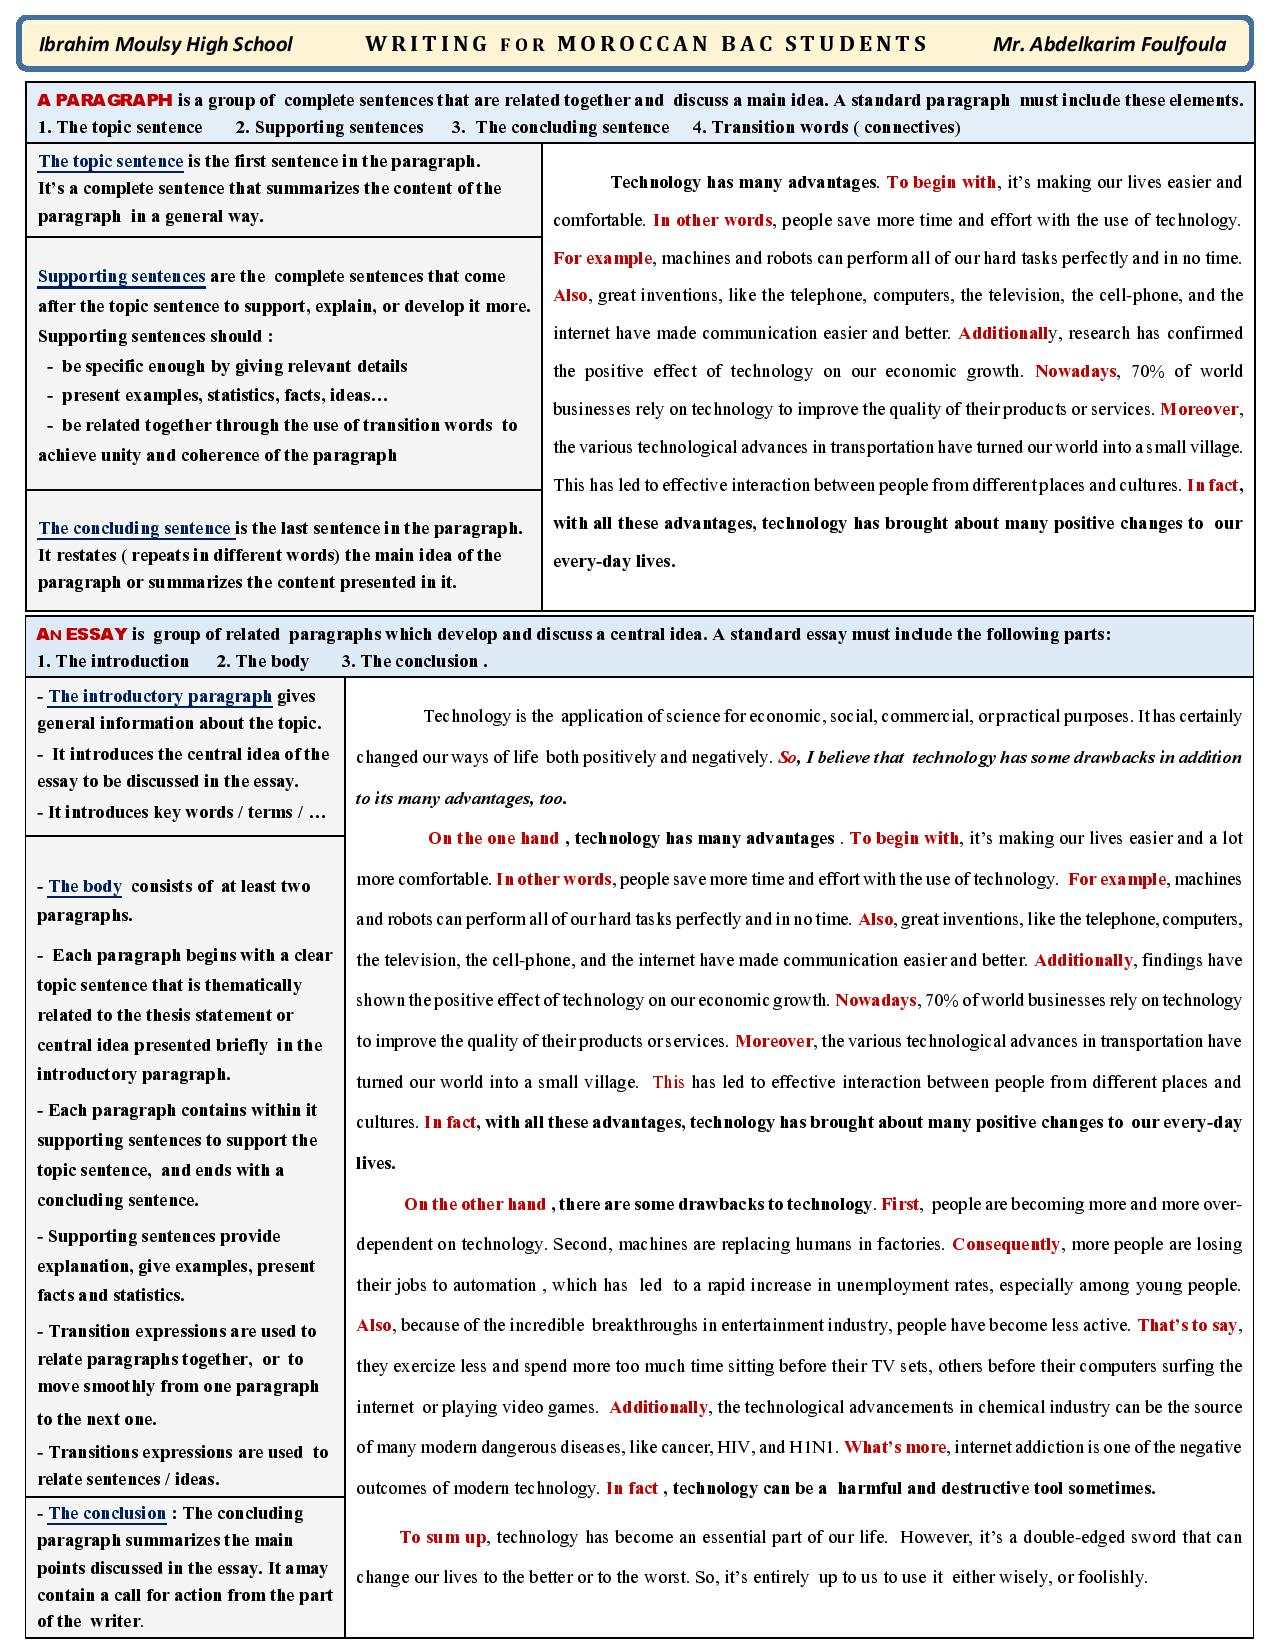 2 bac writing summary reference worksheet page 001 moroccoenglish thecheapjerseys Image collections